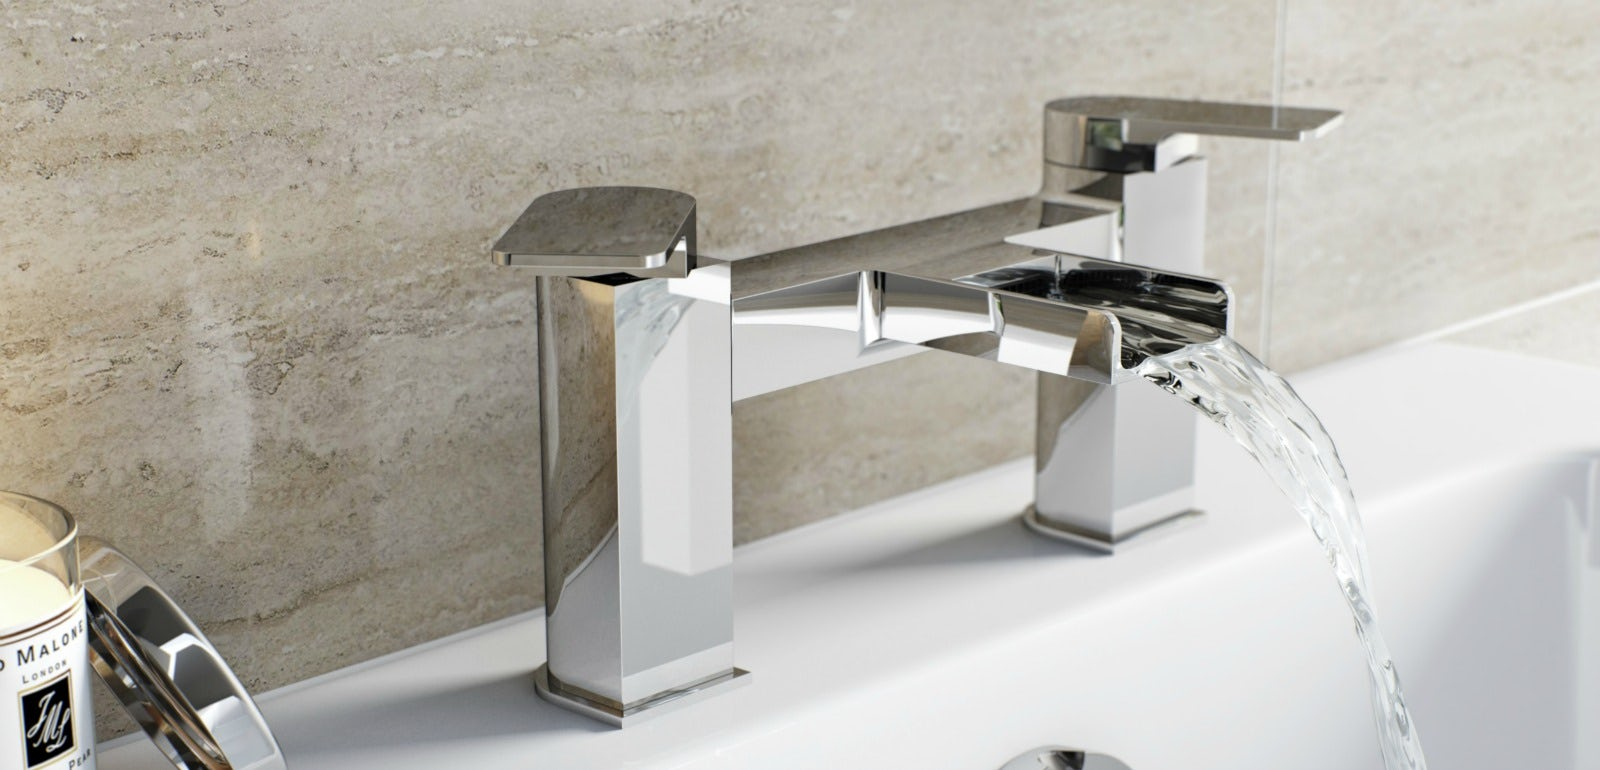 How to Fit Bath Taps | VictoriaPlum.com